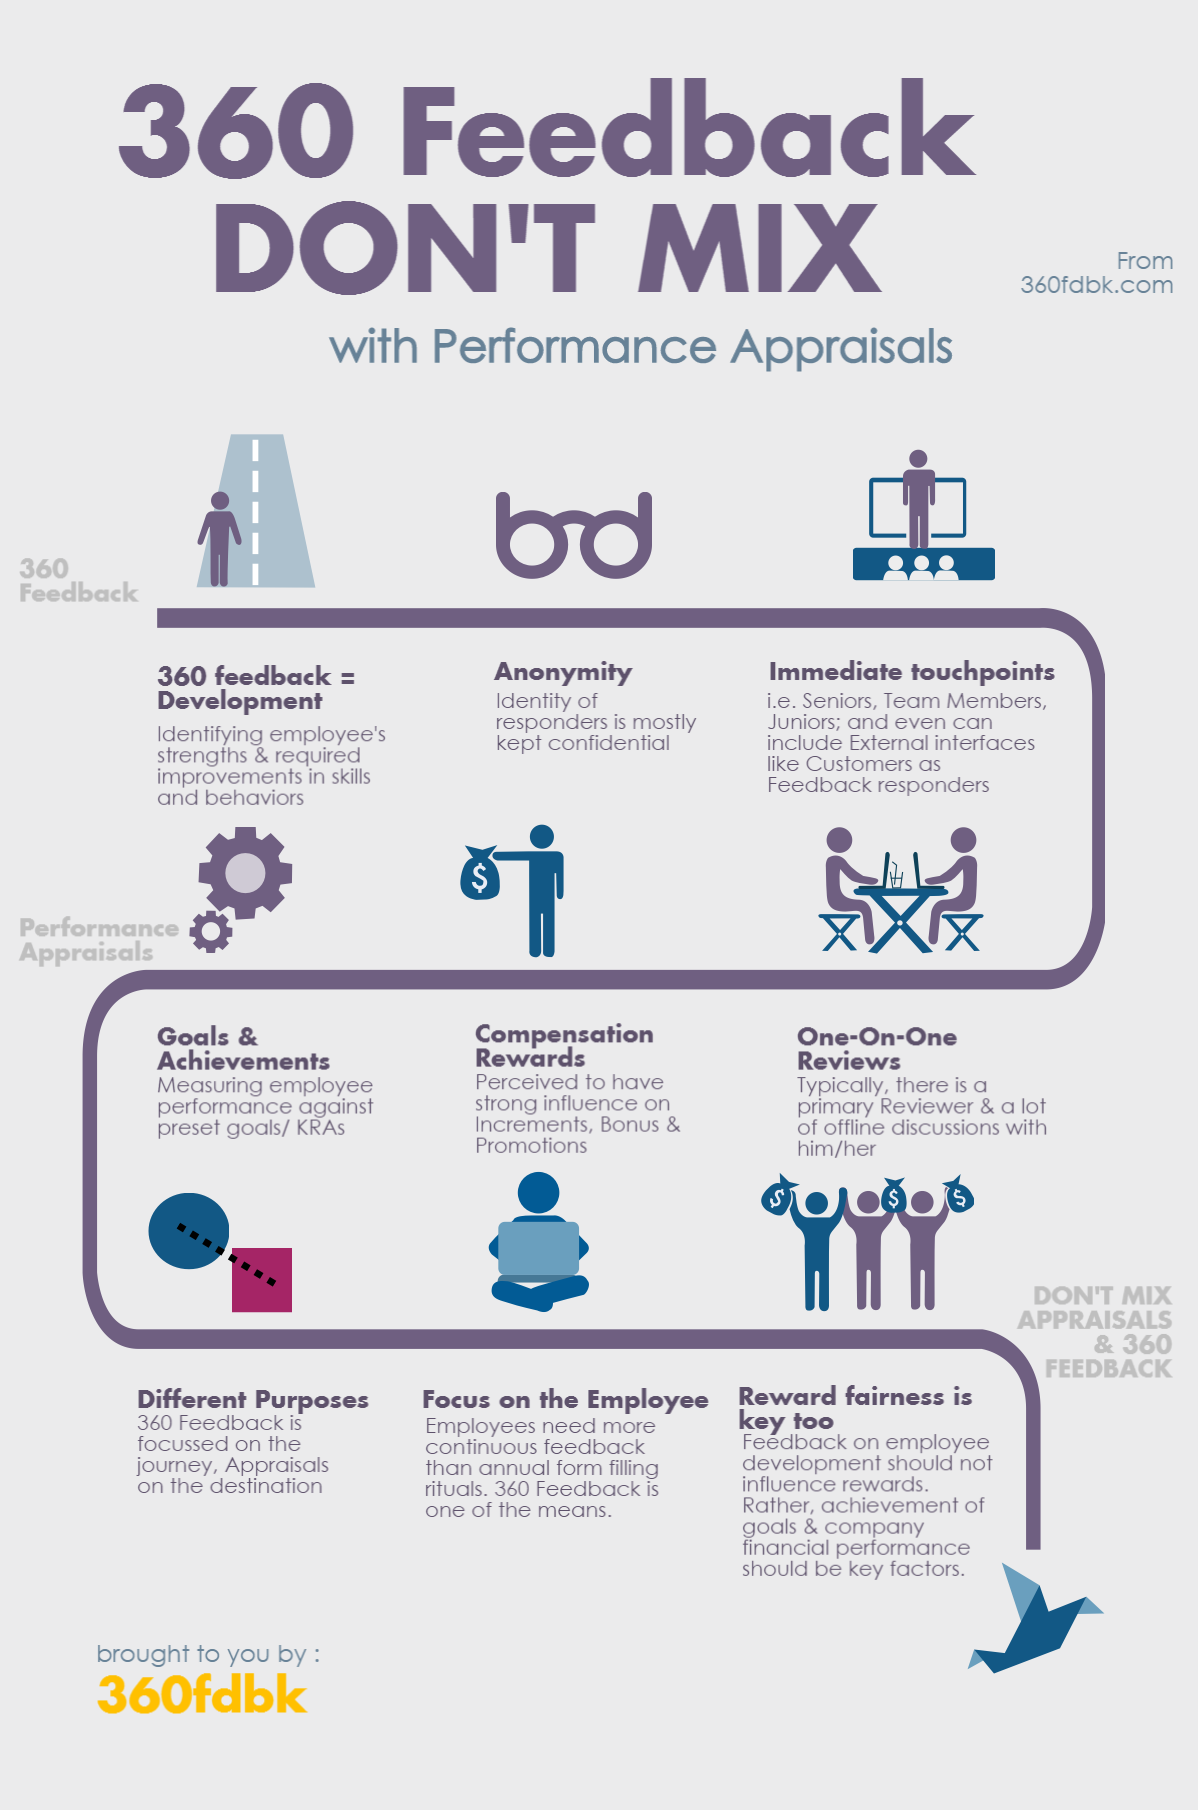 Can 360 Feedback replace Performance Appraisals? But one